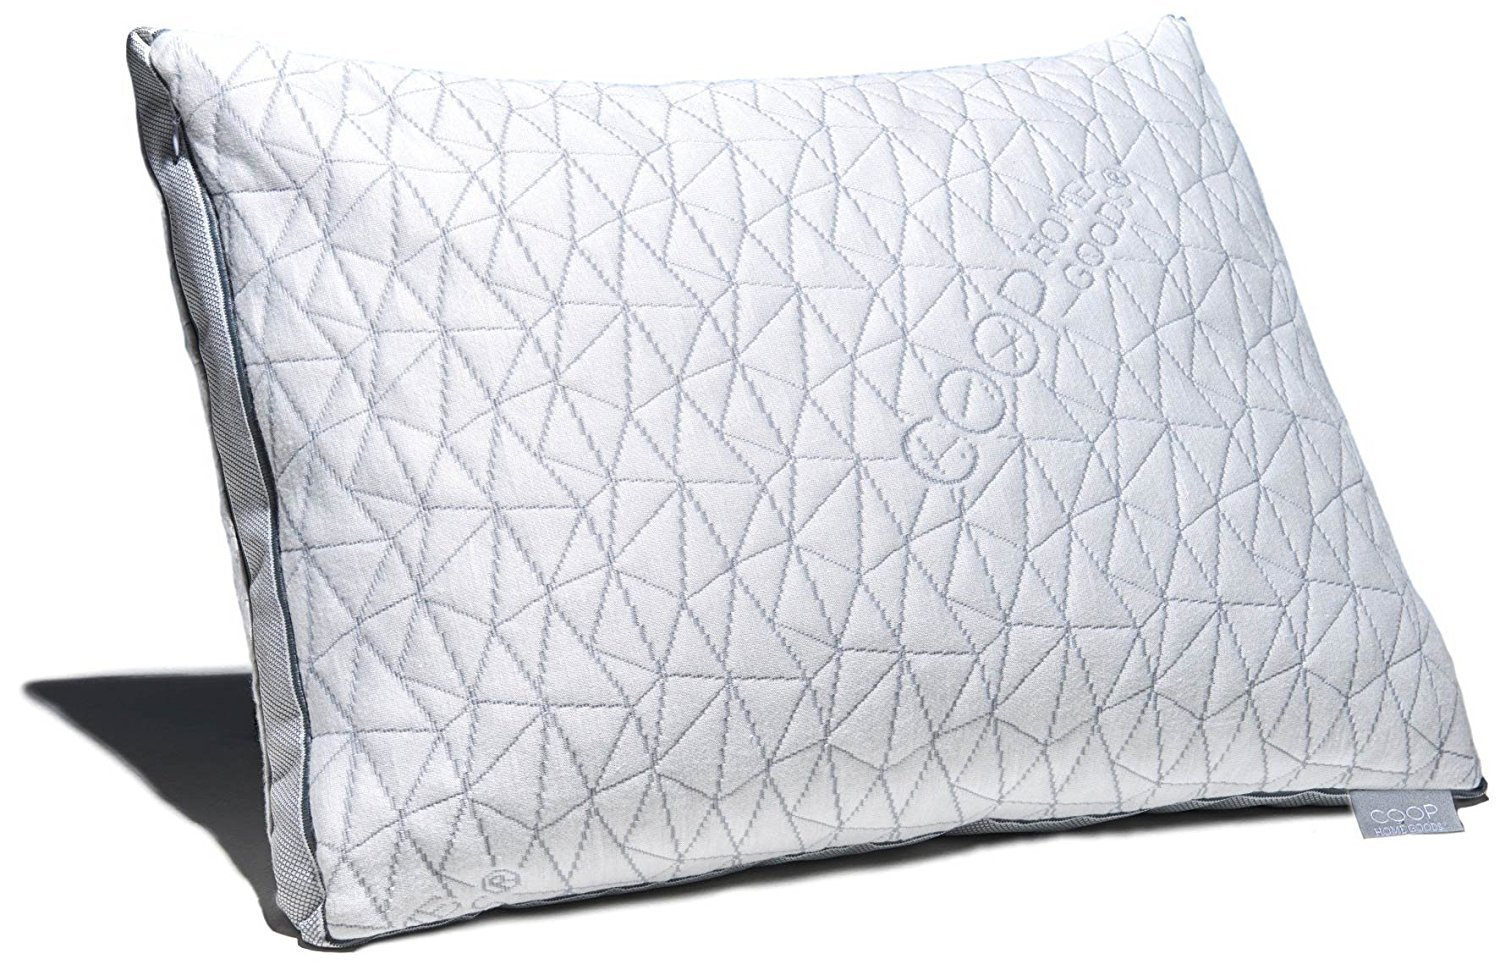 Image of Coop Home Goods - Eden Shredded Memory Foam Pillow with Cooling Zippered Cover and Adjustable Hypoallergenic Gel Infused Memory Foam Fill - Queen